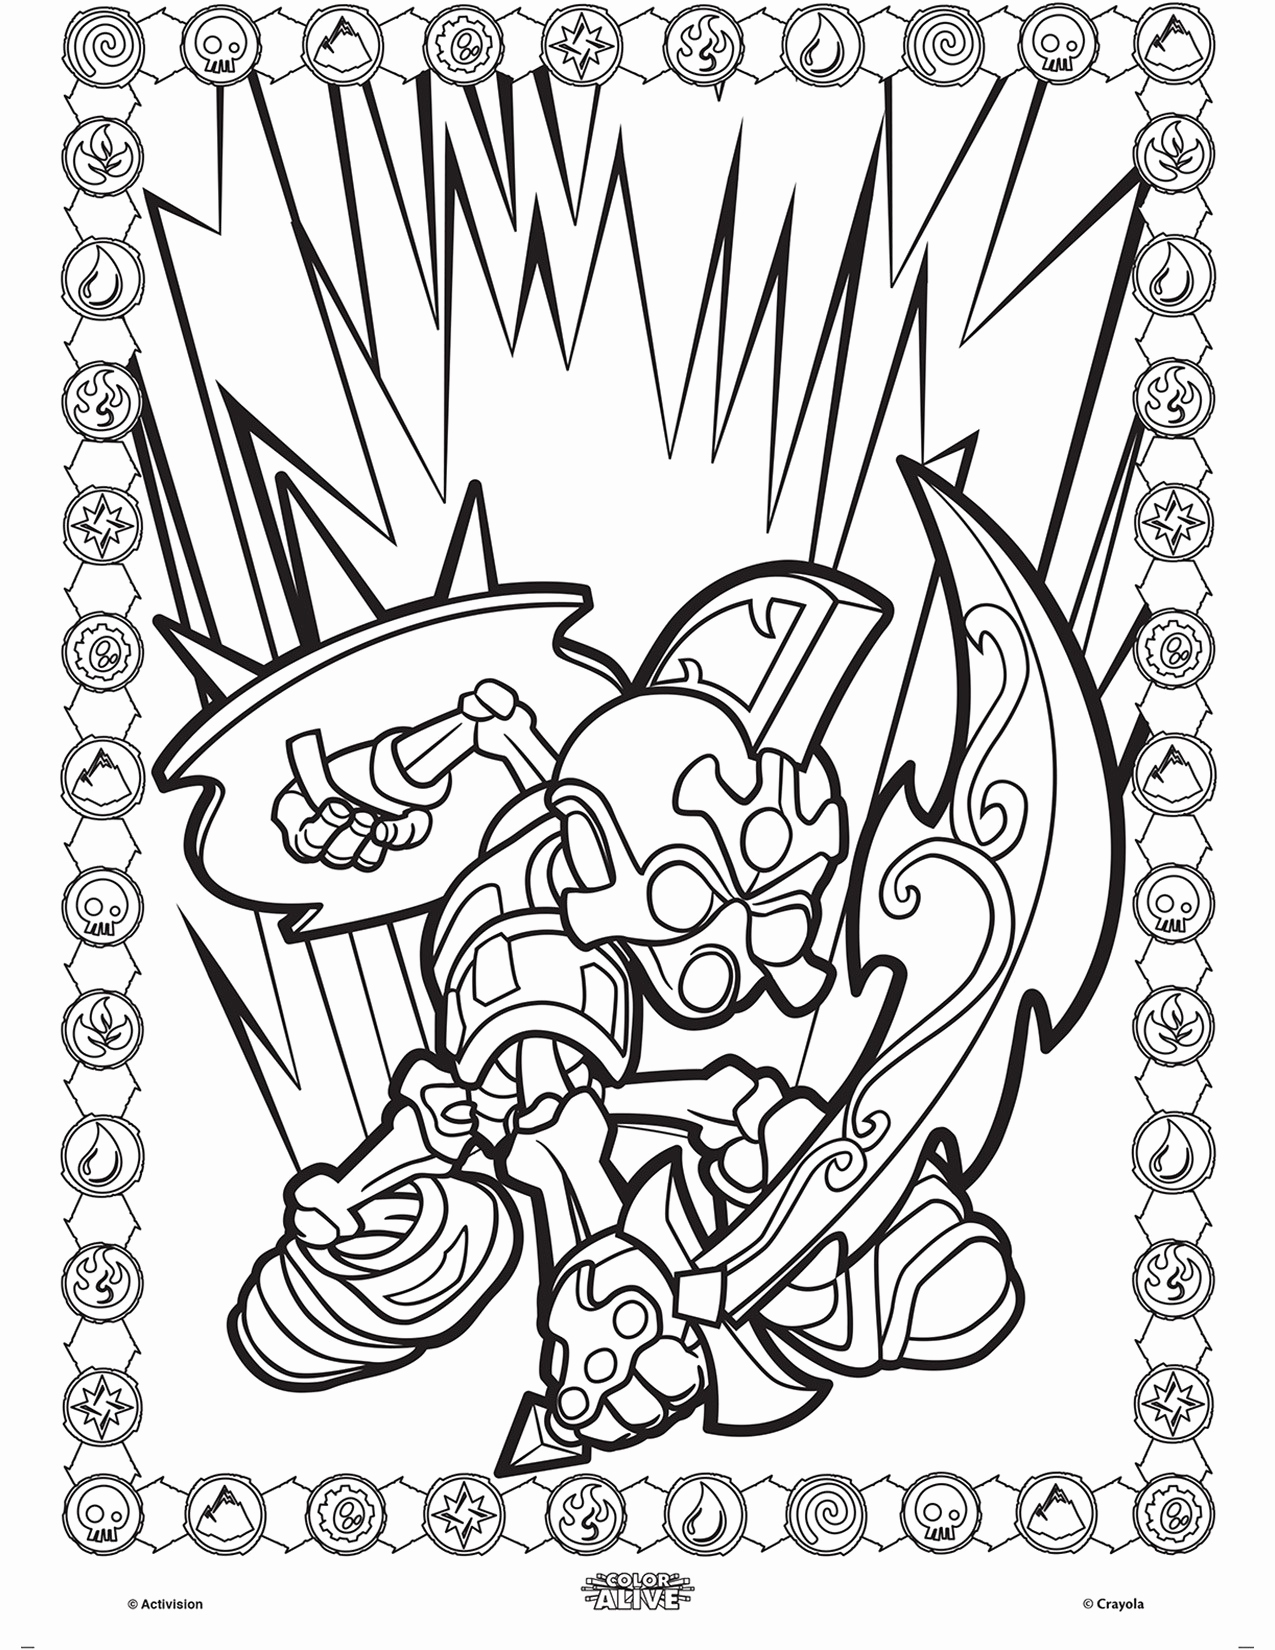 Crayola Giant Coloring Pages